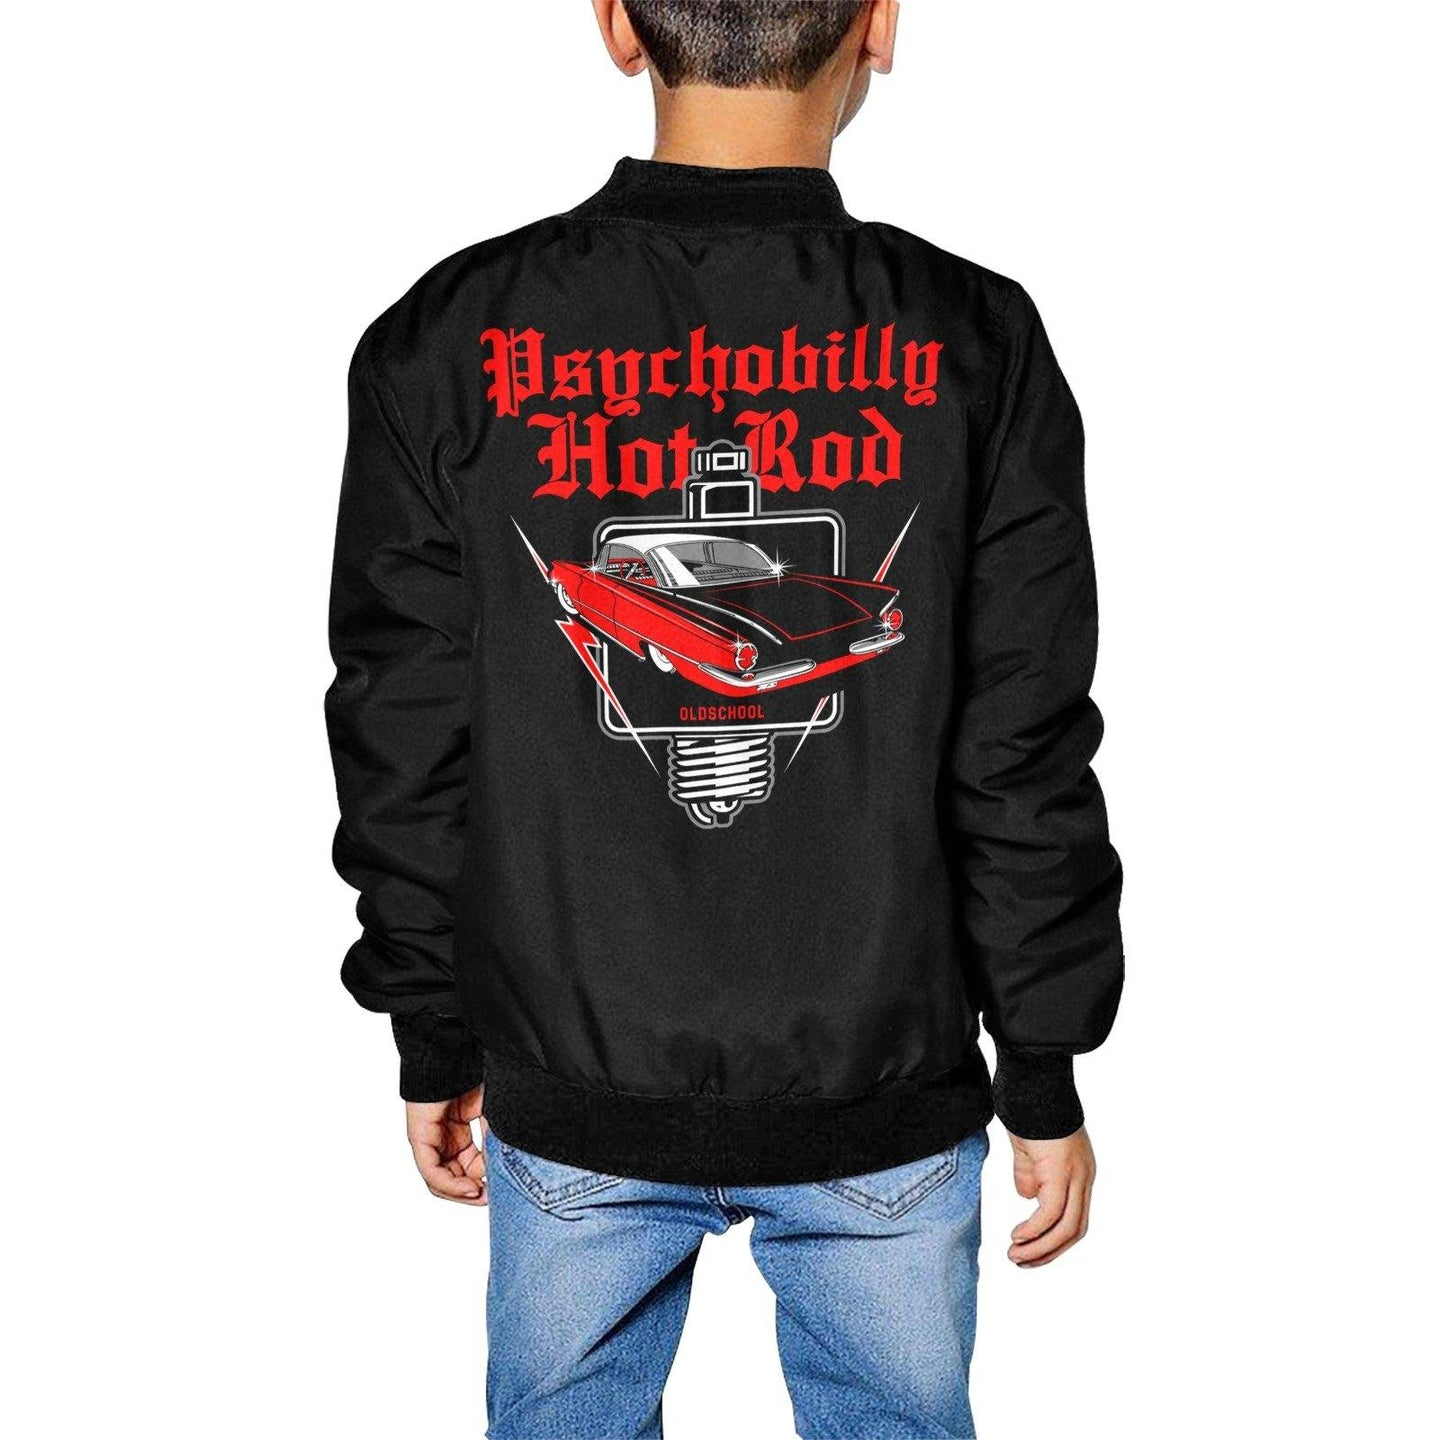 PSYCHOBILLY HOTROD Kid's Hot Rod Print Bomber Jacket XS-XL